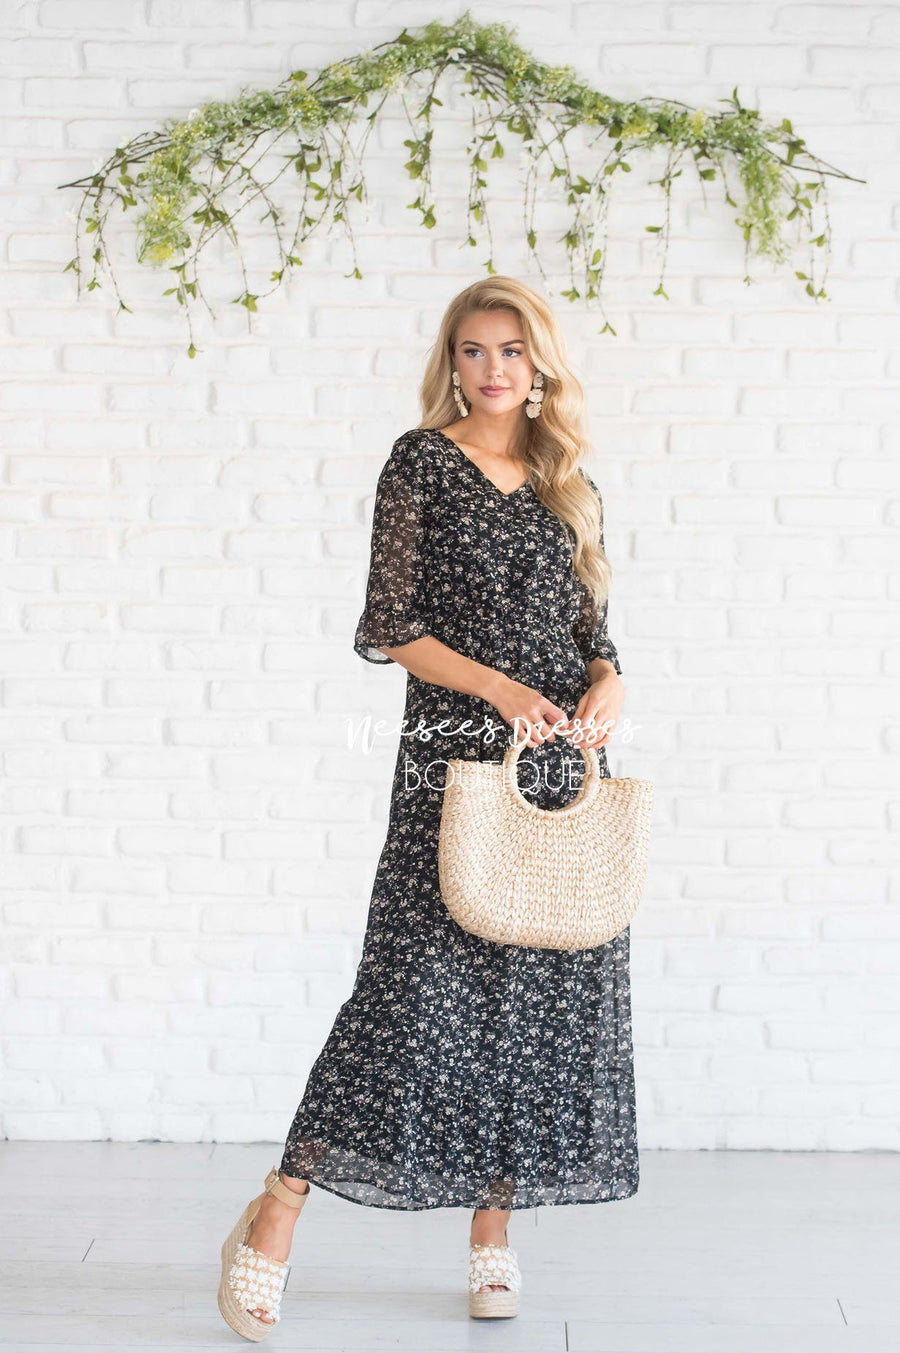 The McKenzie Maxi Dress